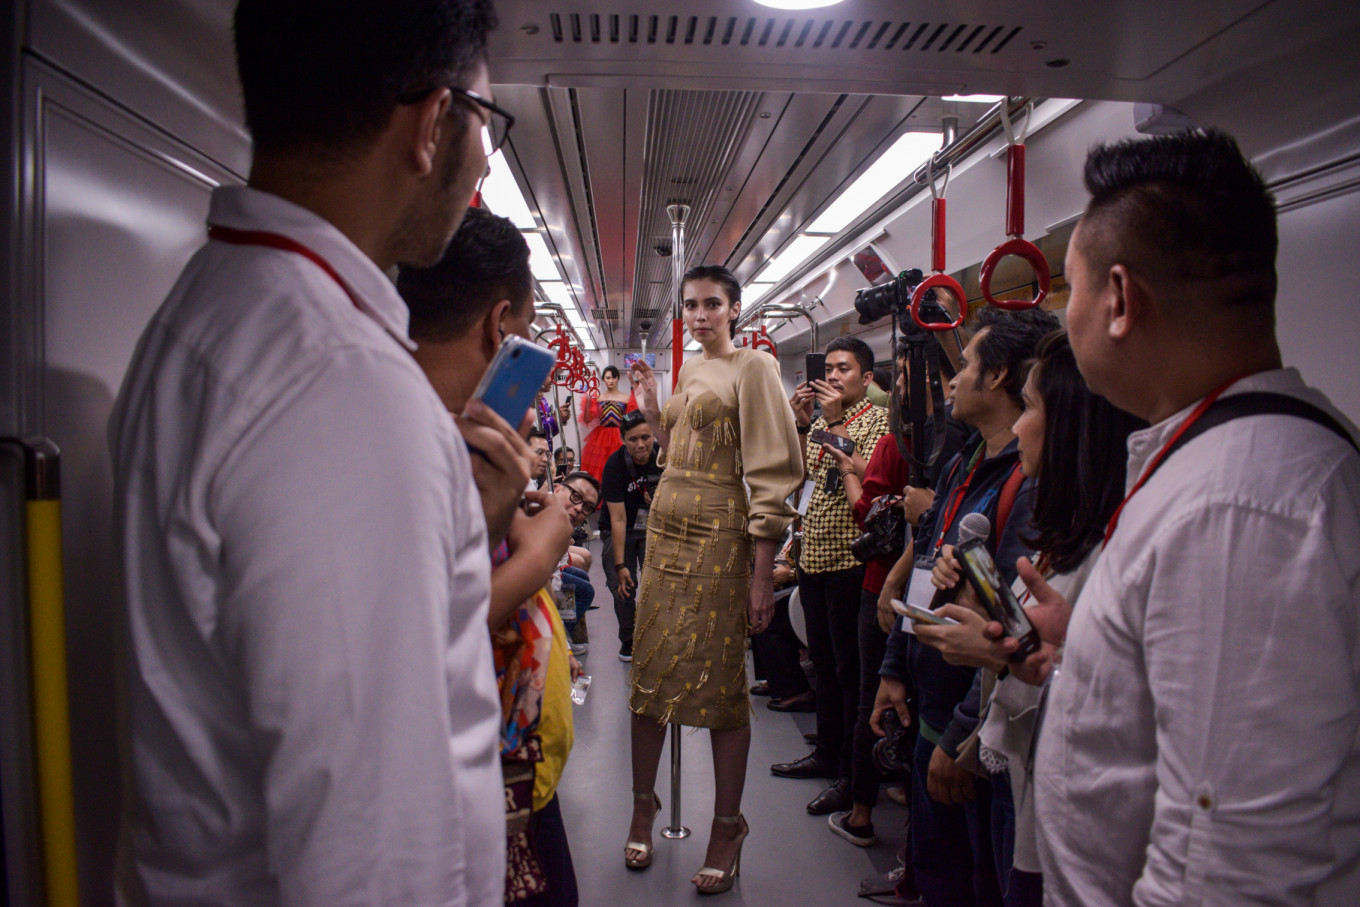 Amid the crowd: A model wears an outfit designed by Yogie Pratama.